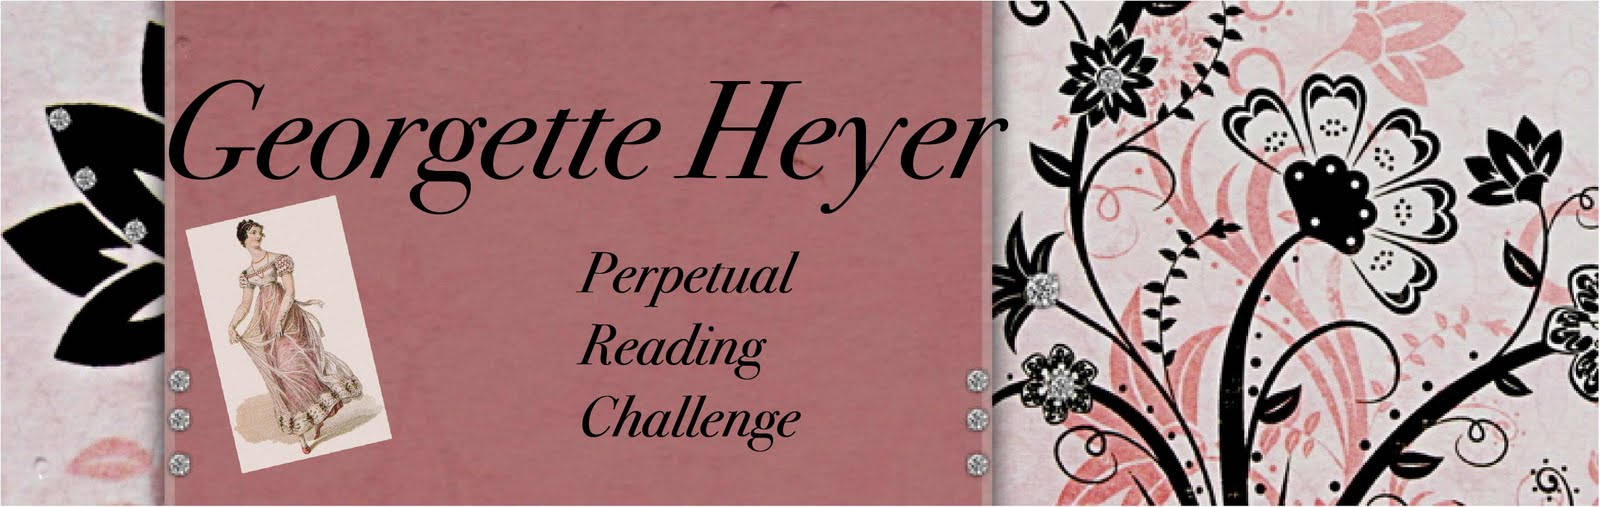 Georgette Heyer Challenge